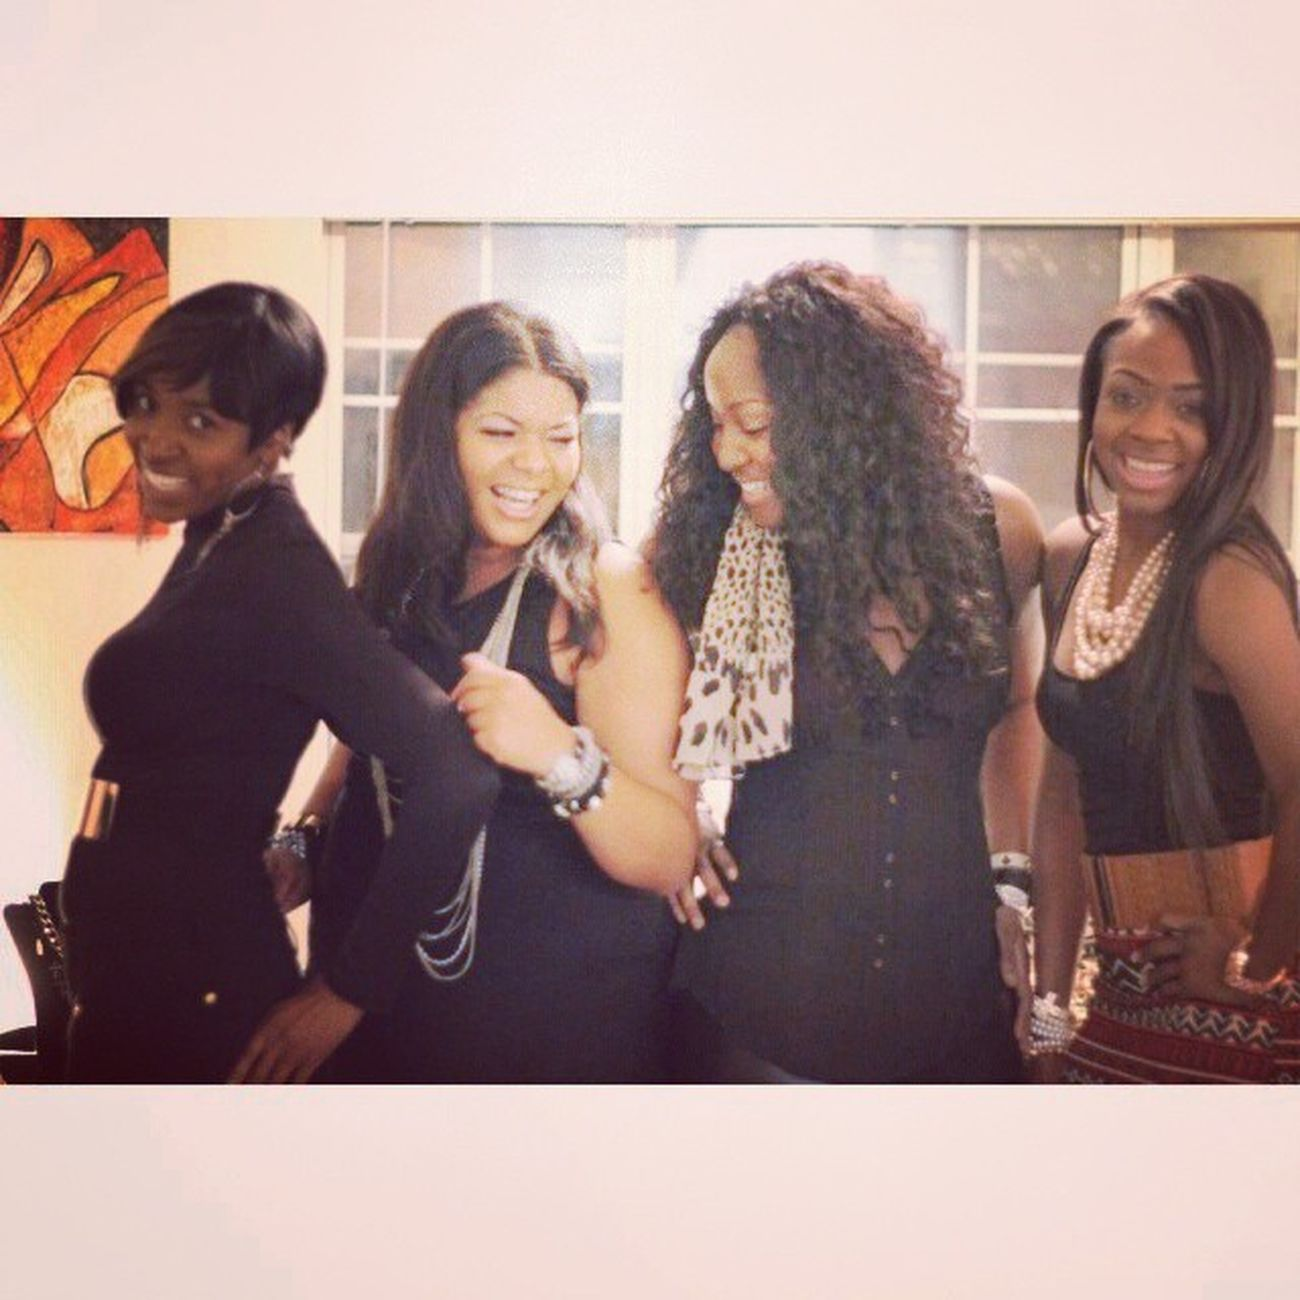 Last night was AllSmiles  with the ladies... @chansartisticlife @myssmeka @candycoatedhrt ArtLife Beautifulmoment